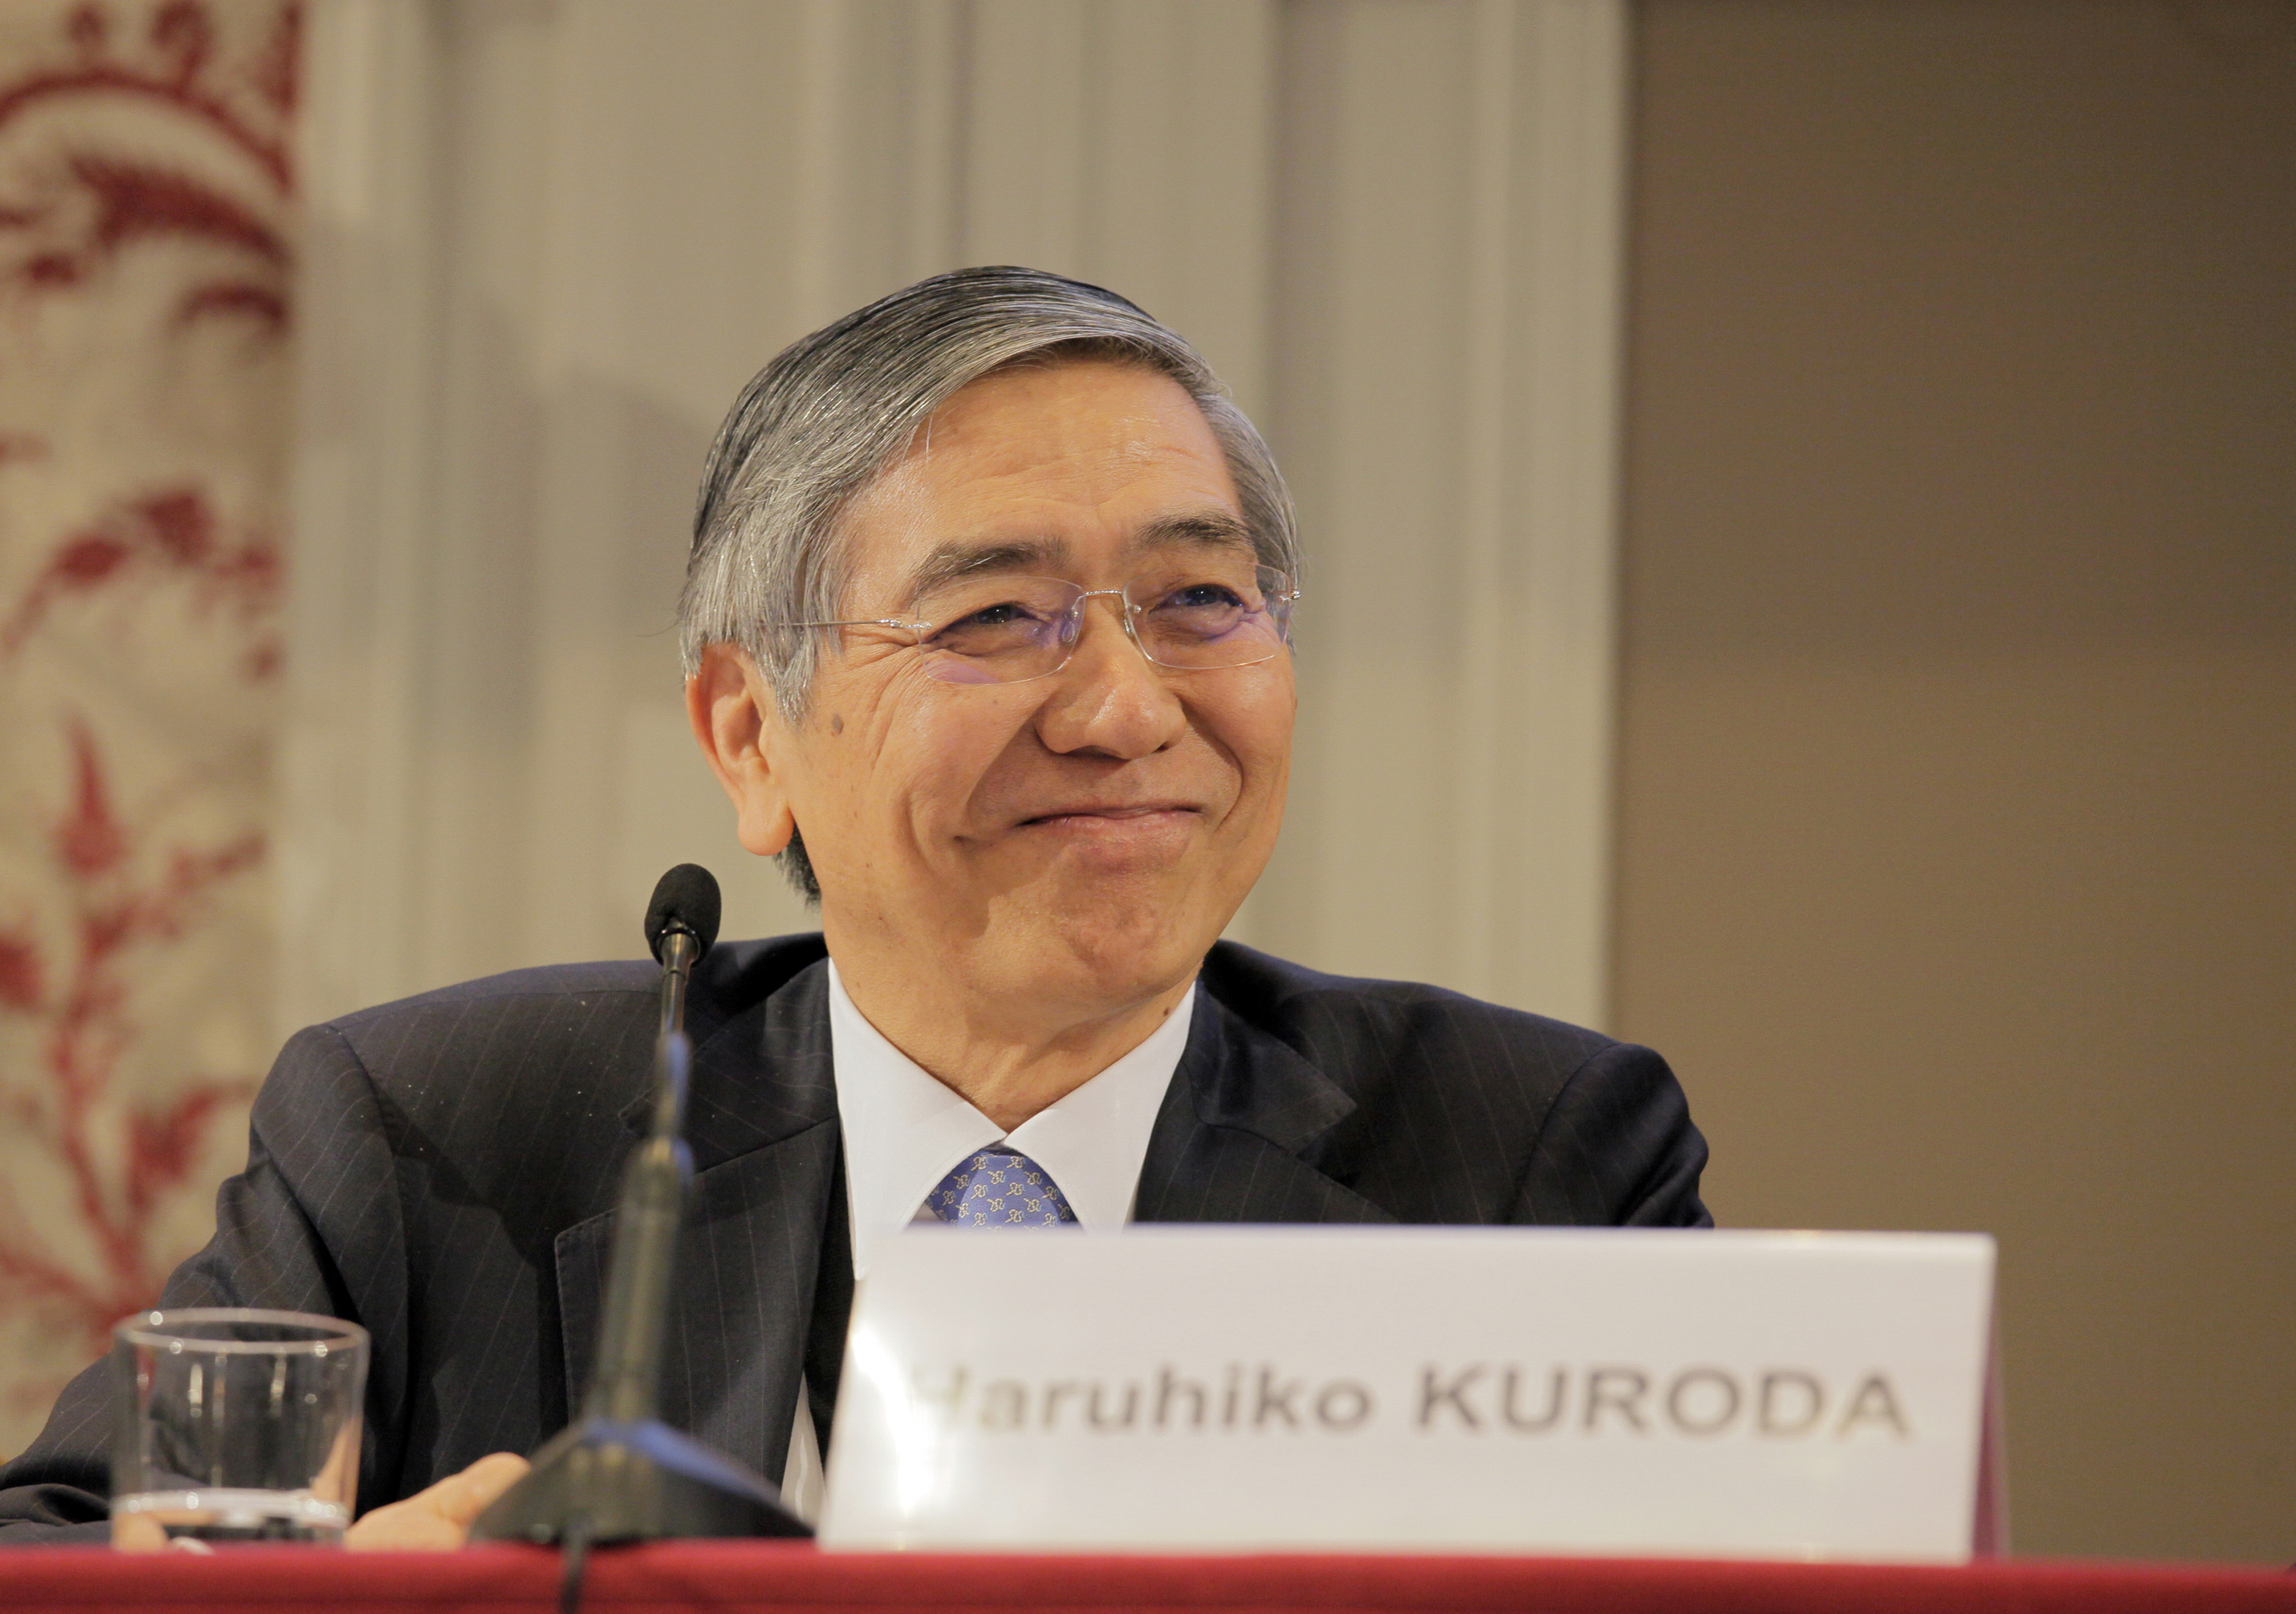 Bank of Japan Gov. Haruhiko Kuroda attends the International Symposium of the Bank of France policy conference in Paris on Friday. | BLOOMBERG